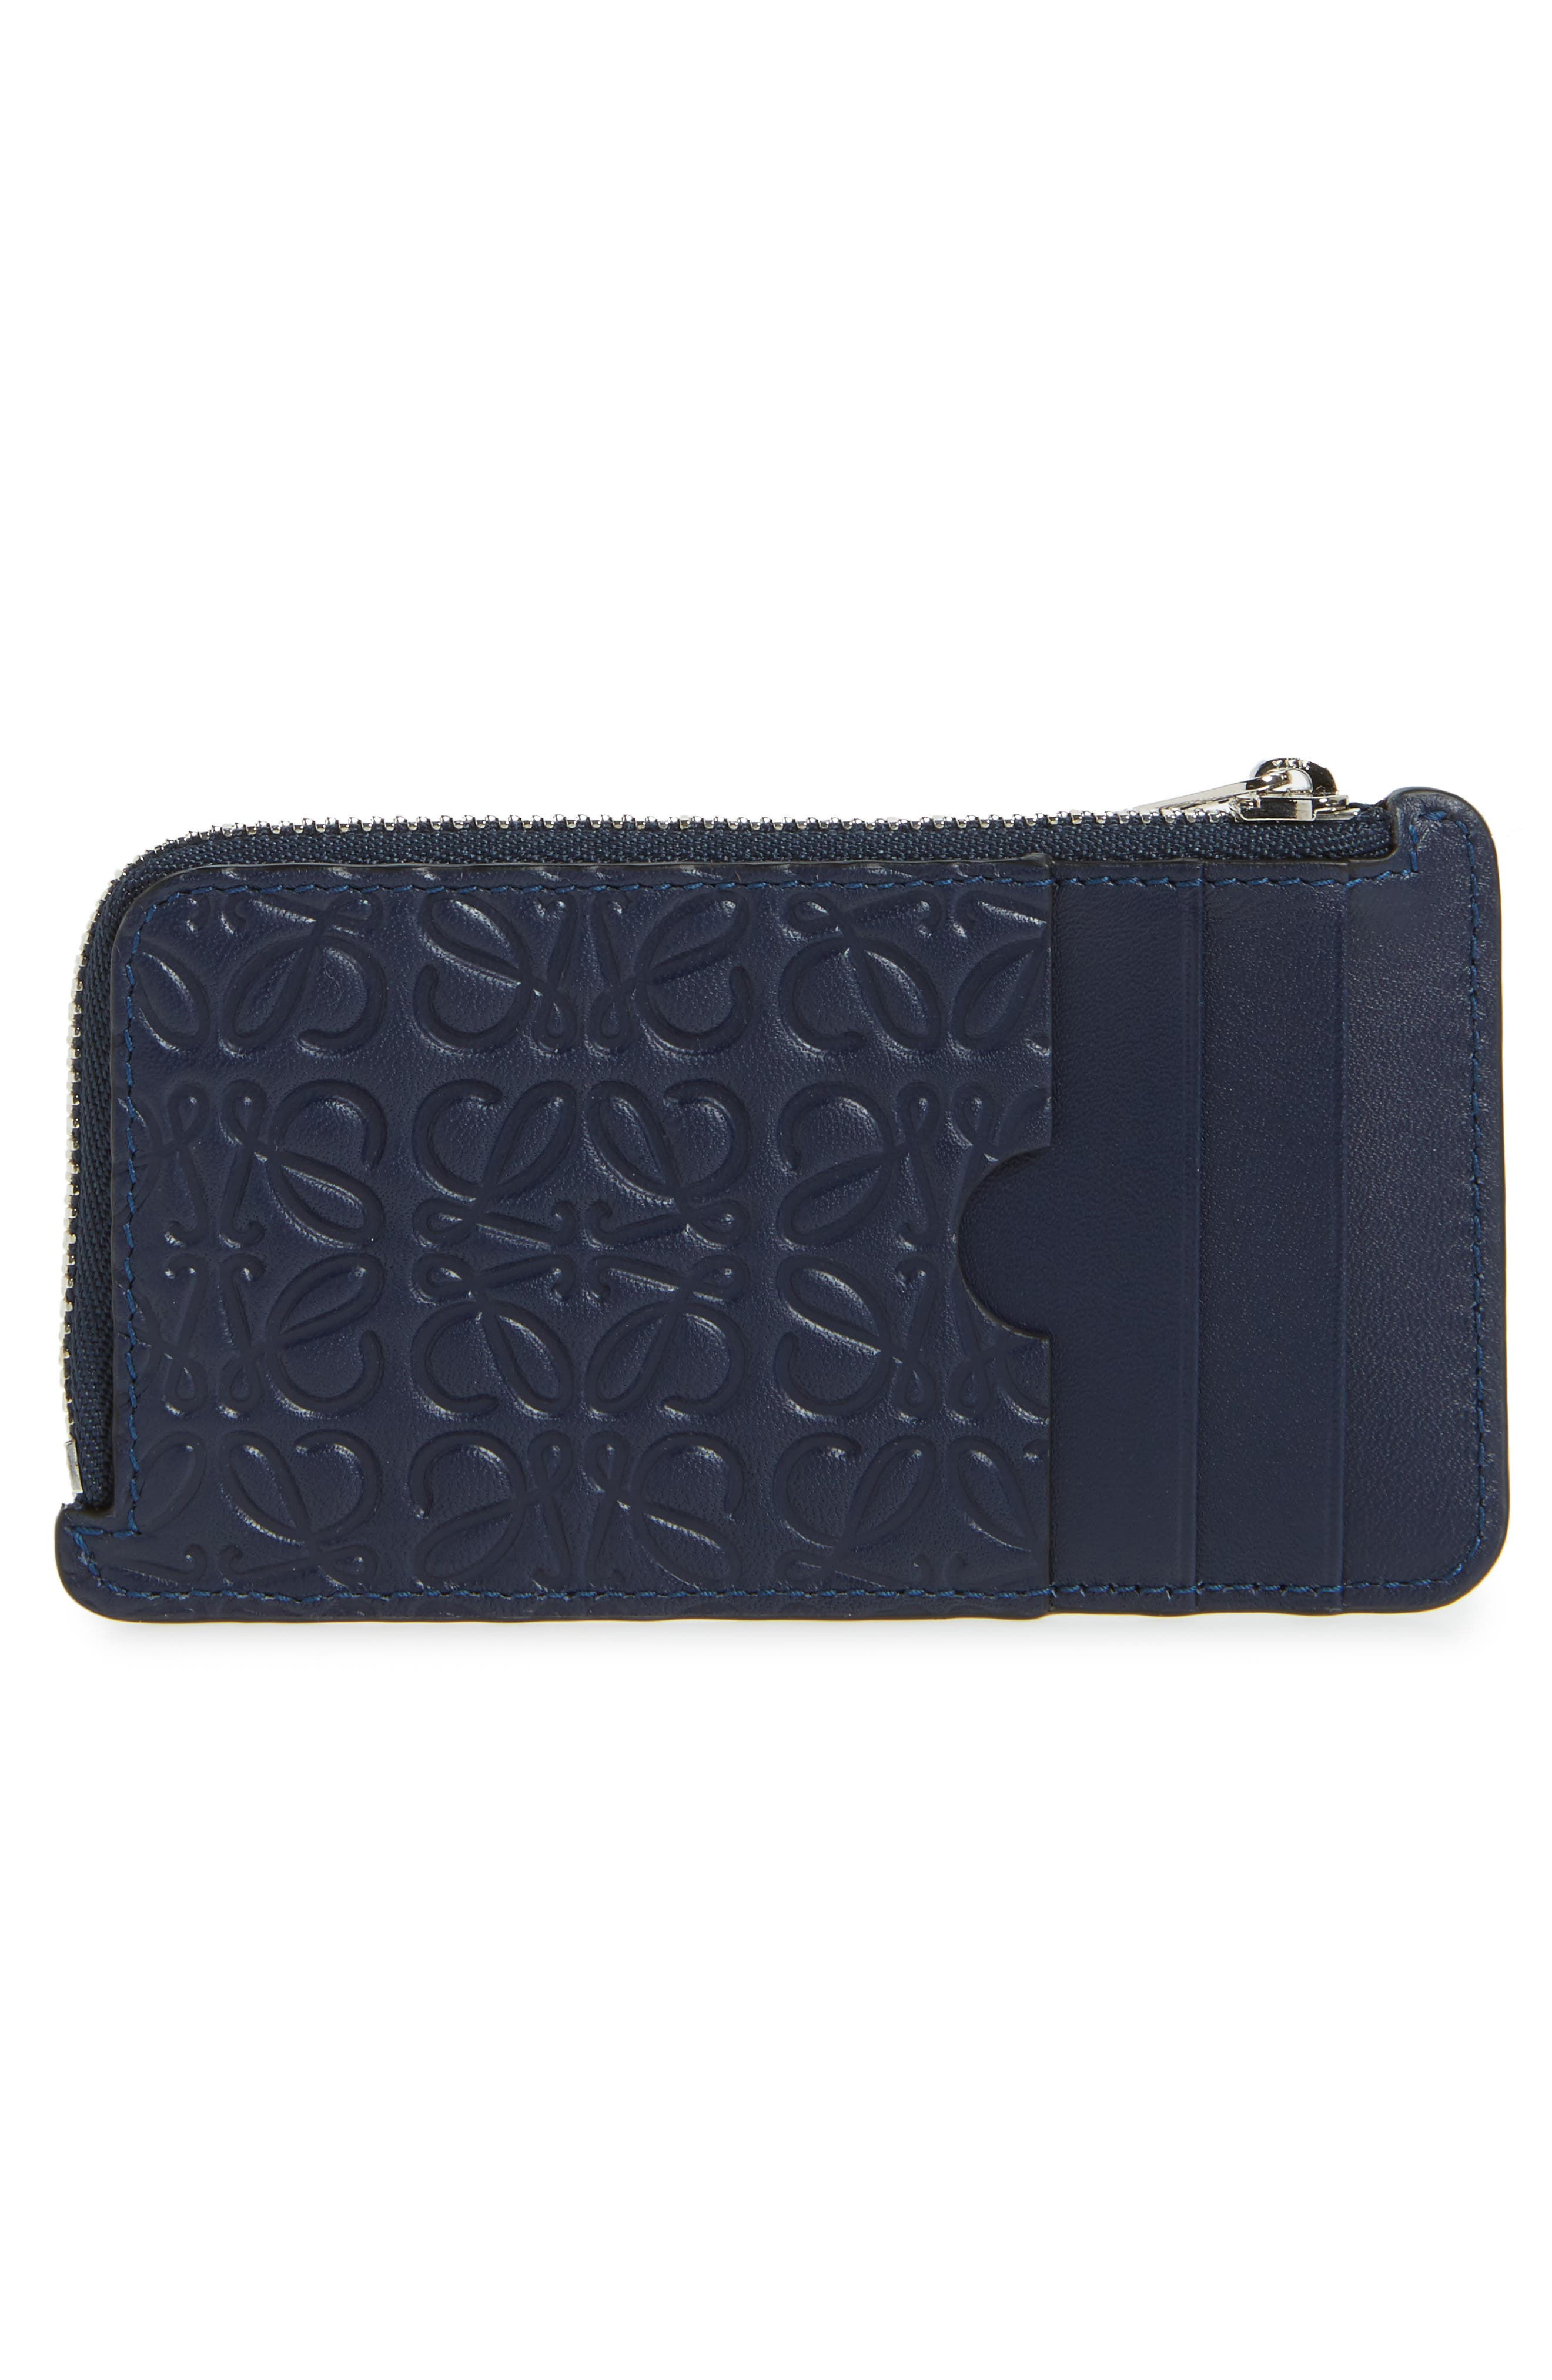 Coin & Card Zip Pouch,                             Alternate thumbnail 2, color,                             Navy Blue